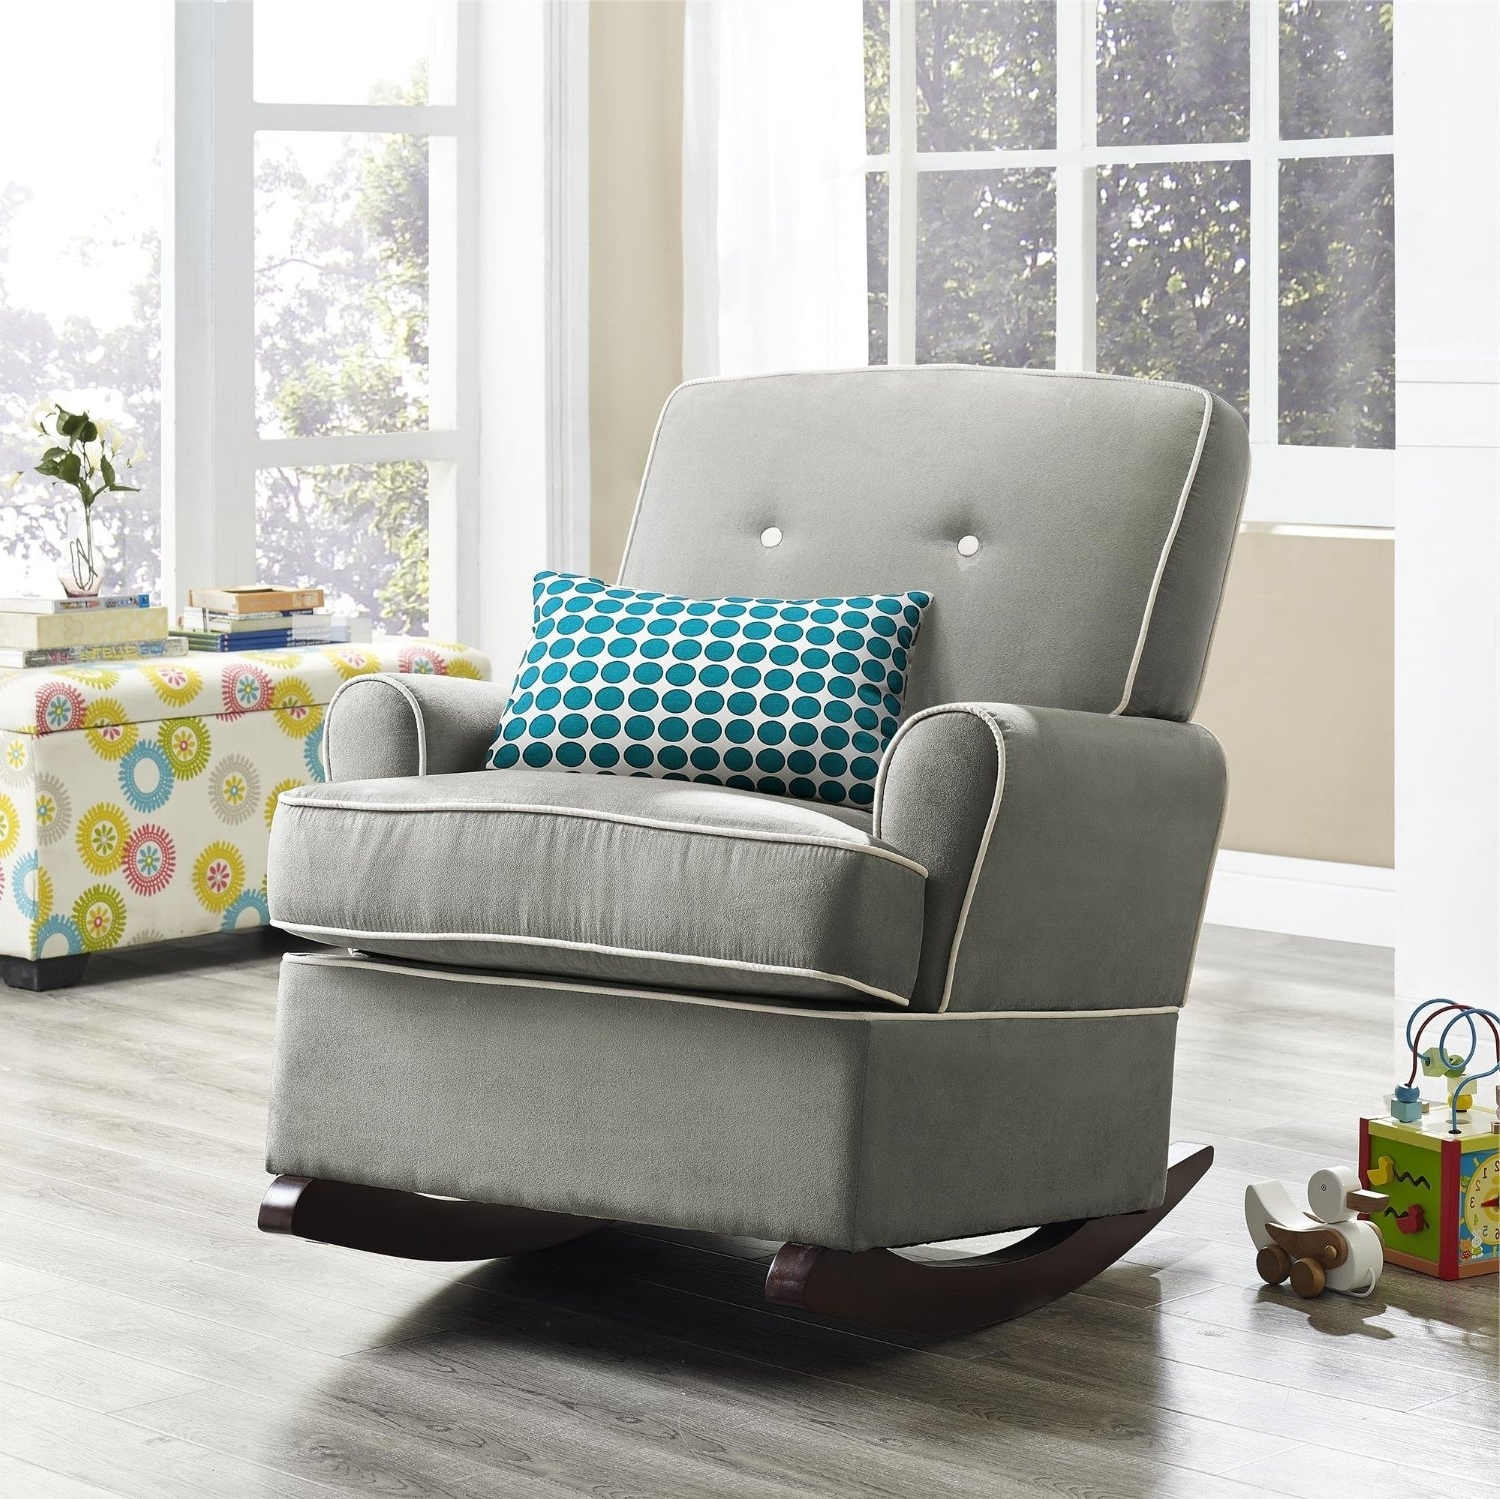 Upholstered Rocking Chairs Intended For Well Known The Best Upholstered Rocking Chair 2018 (Gallery 9 of 20)